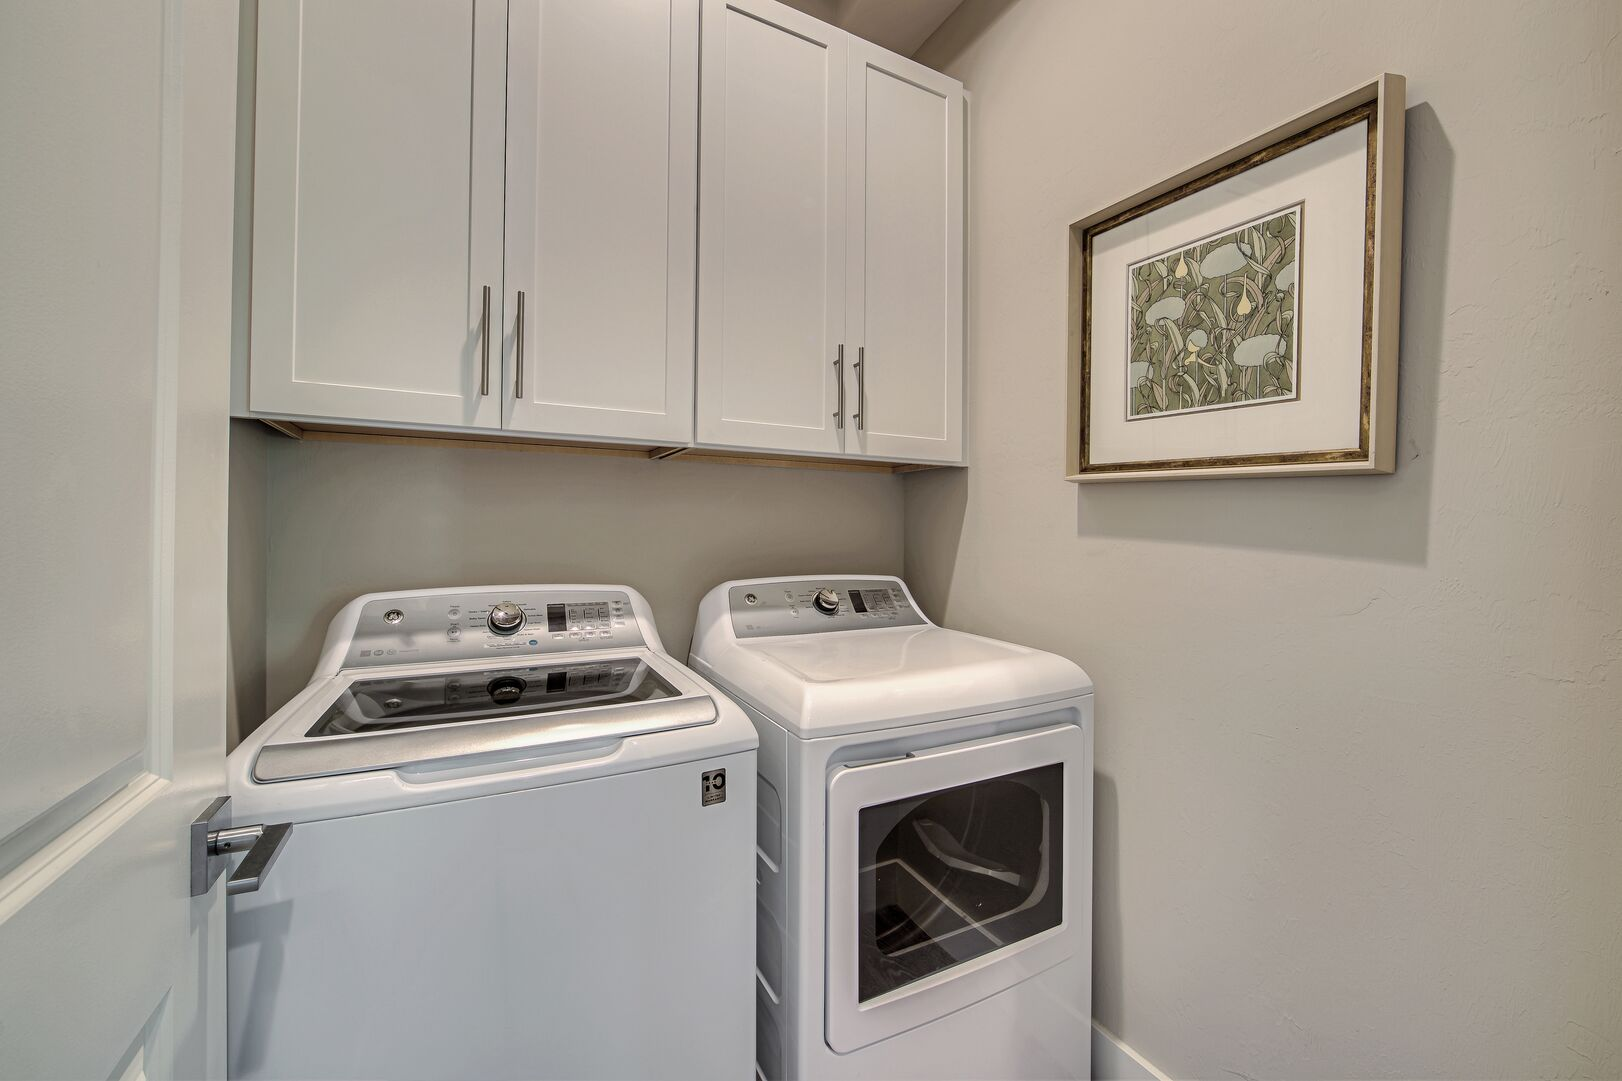 Laundry room with washer/dryer combo